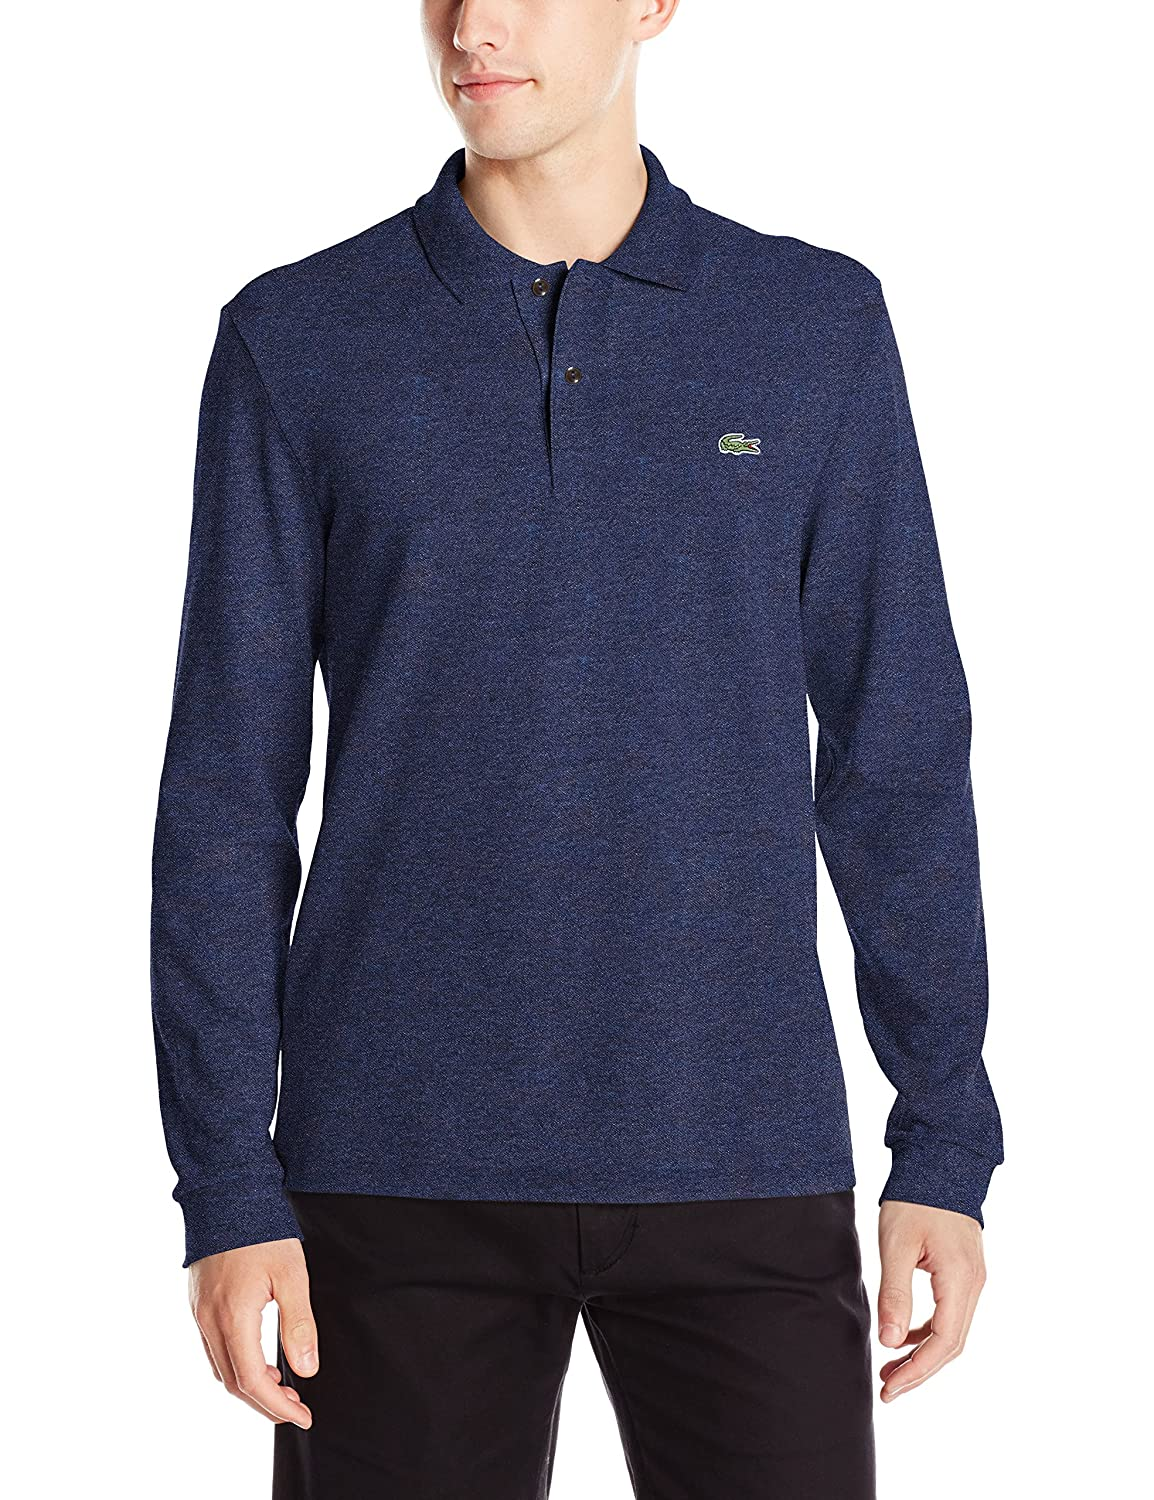 c5fee2de8c39e Lacoste Men s Long Sleeve Classic Chine Pique Polo